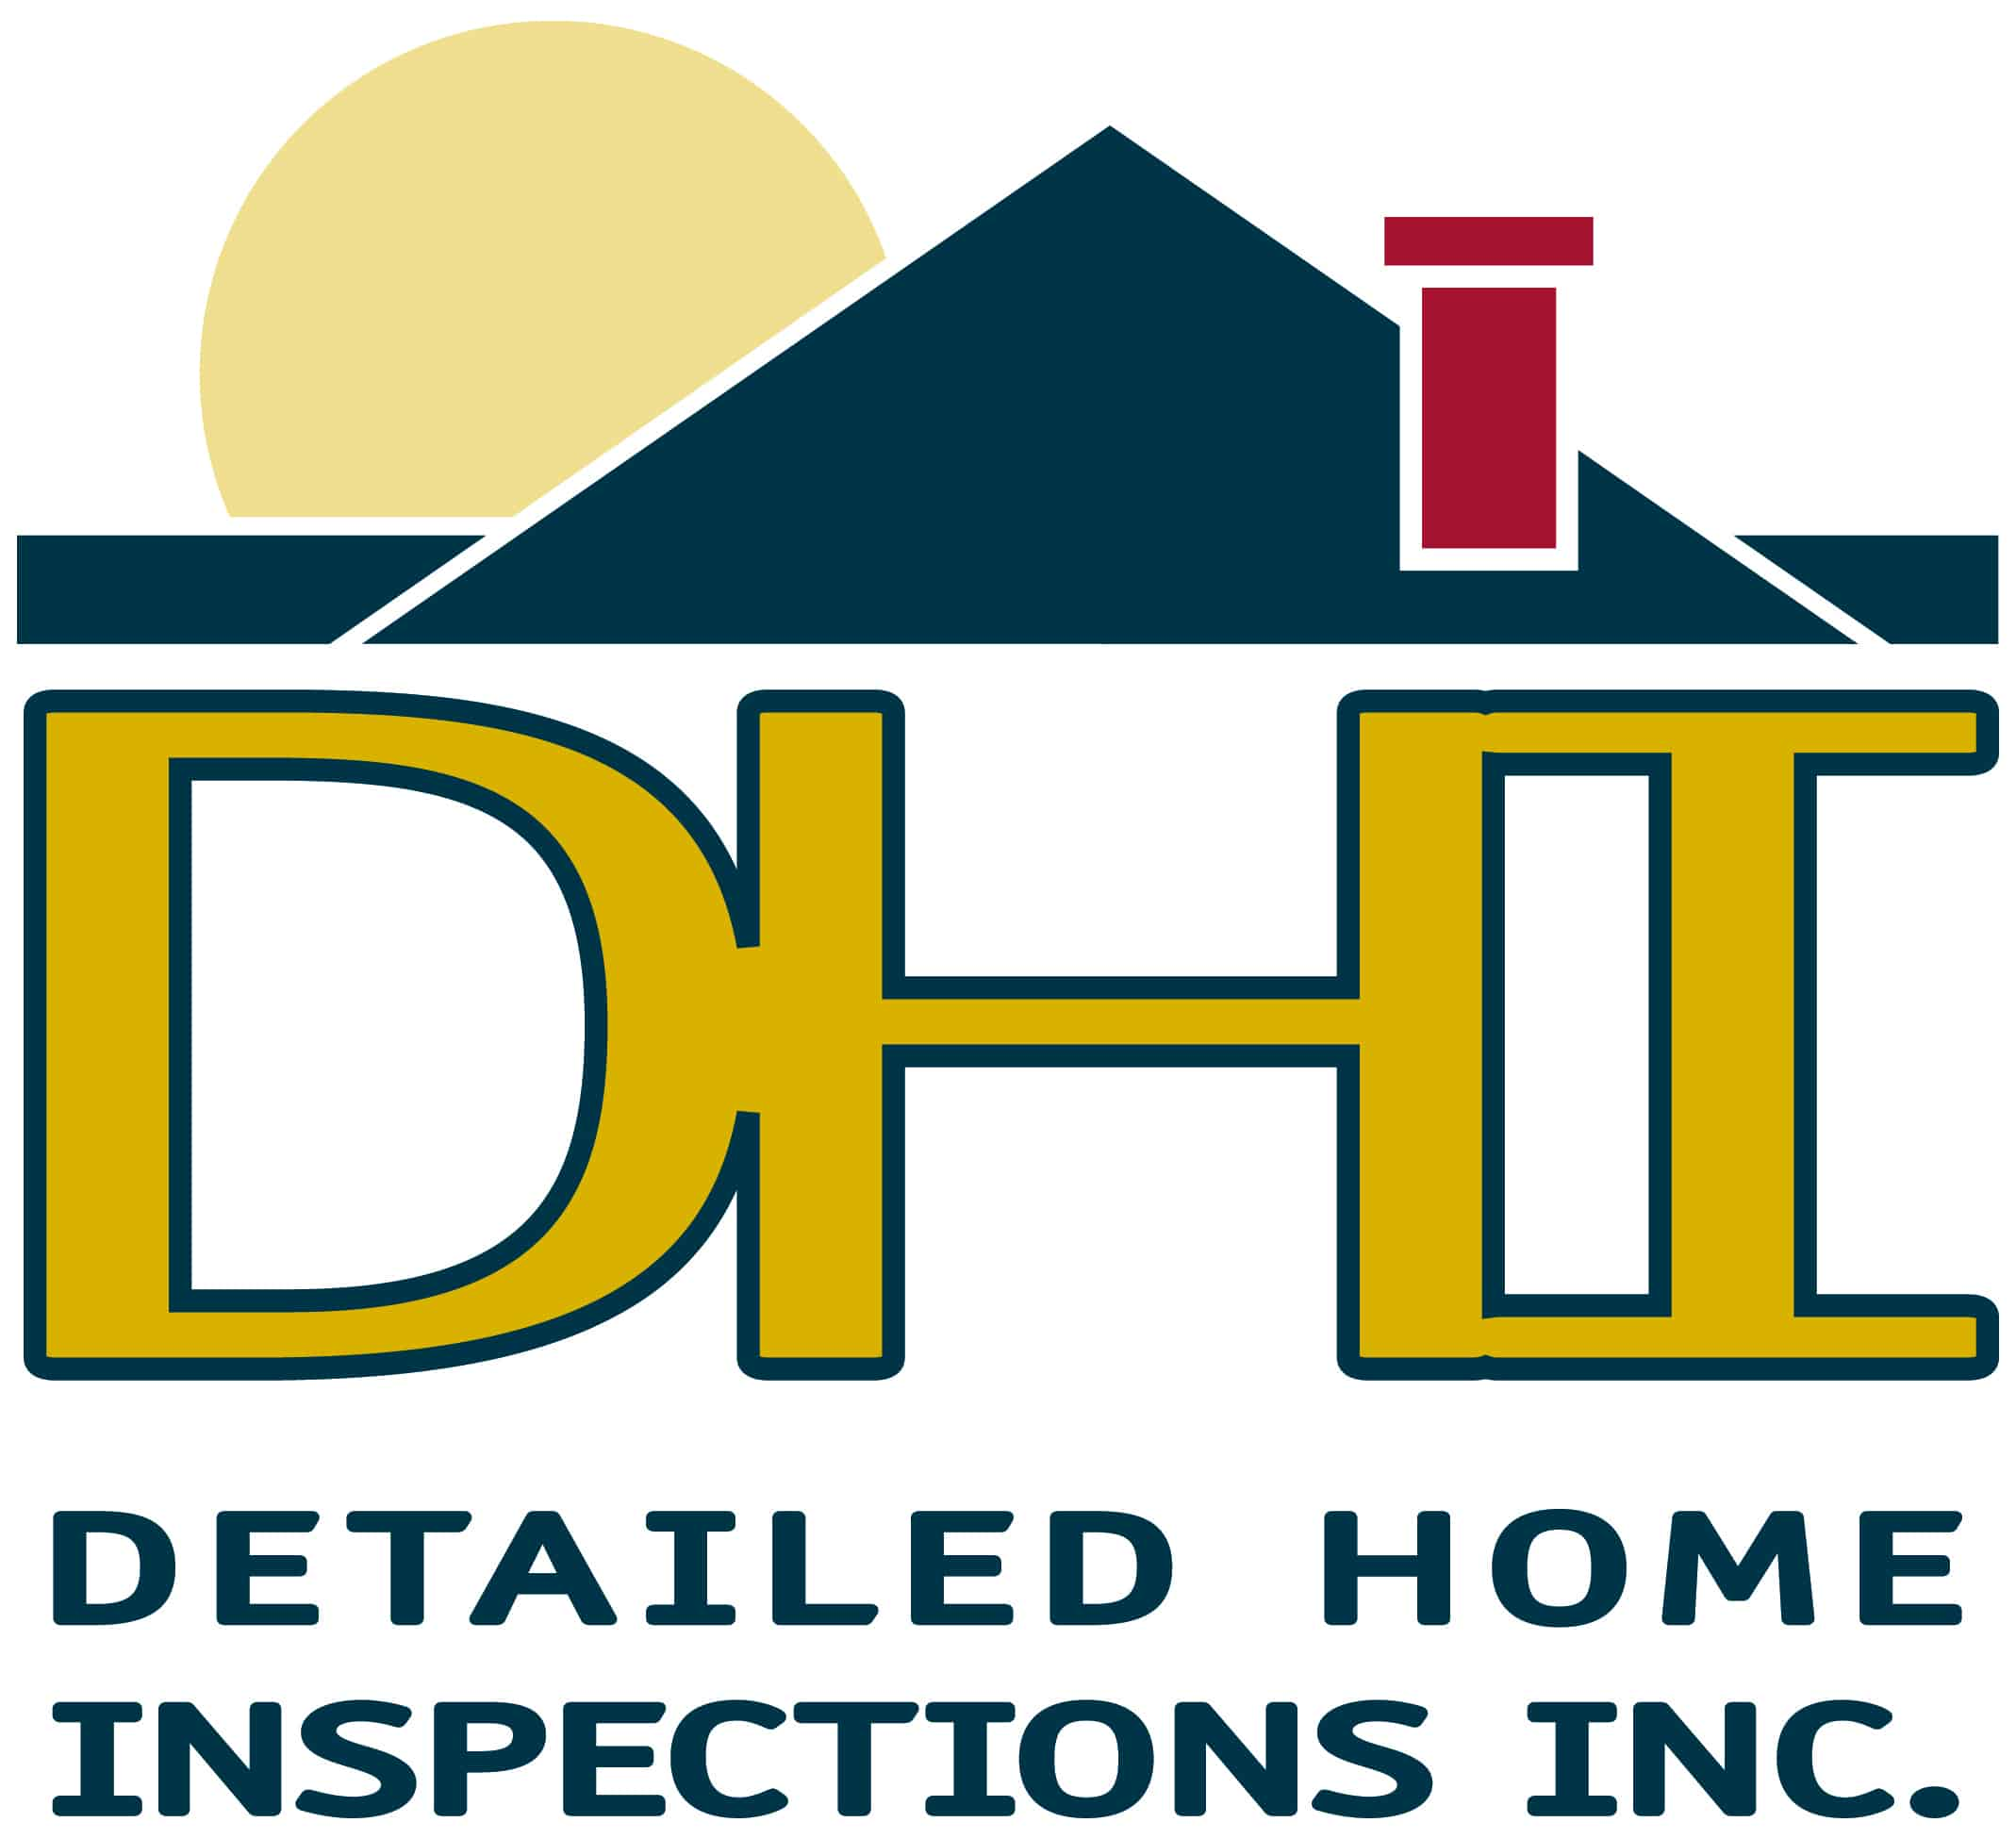 Detailed Home Inspections Inc.